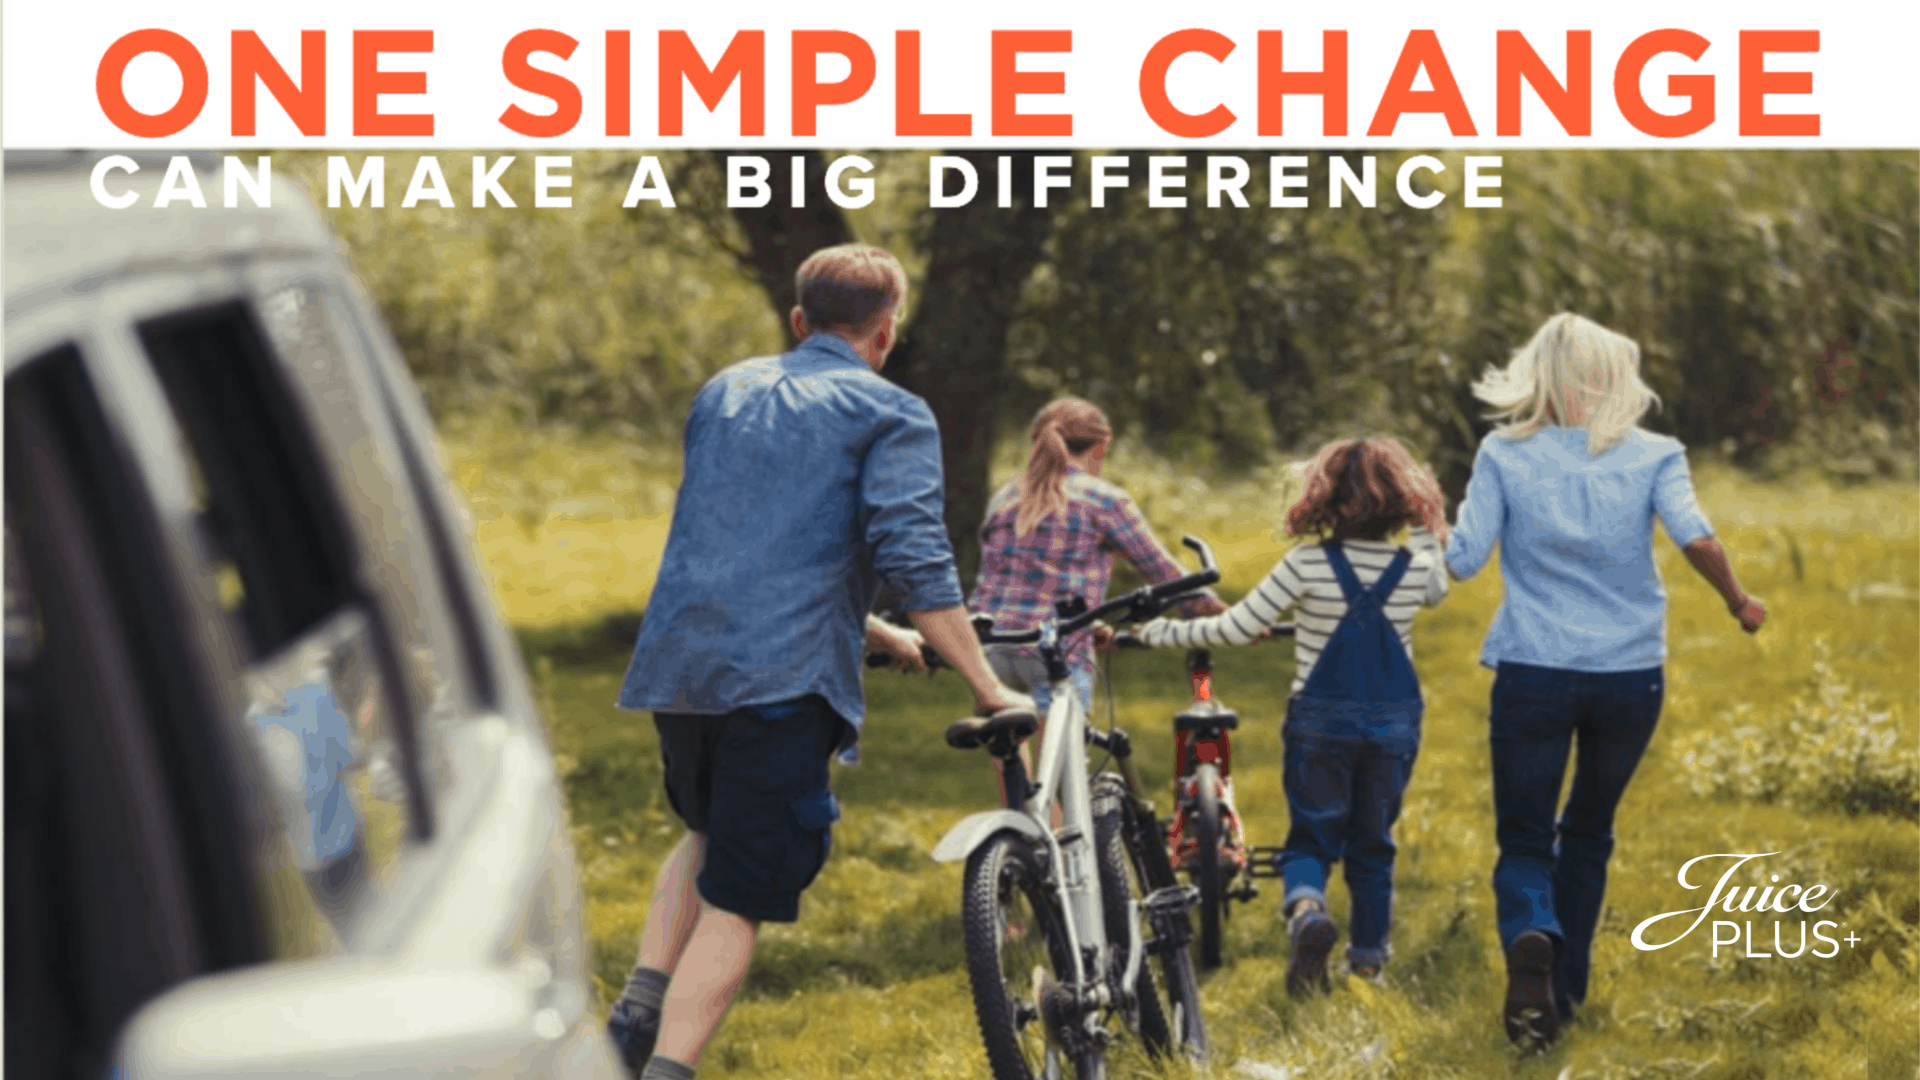 One Simple Change Brochure